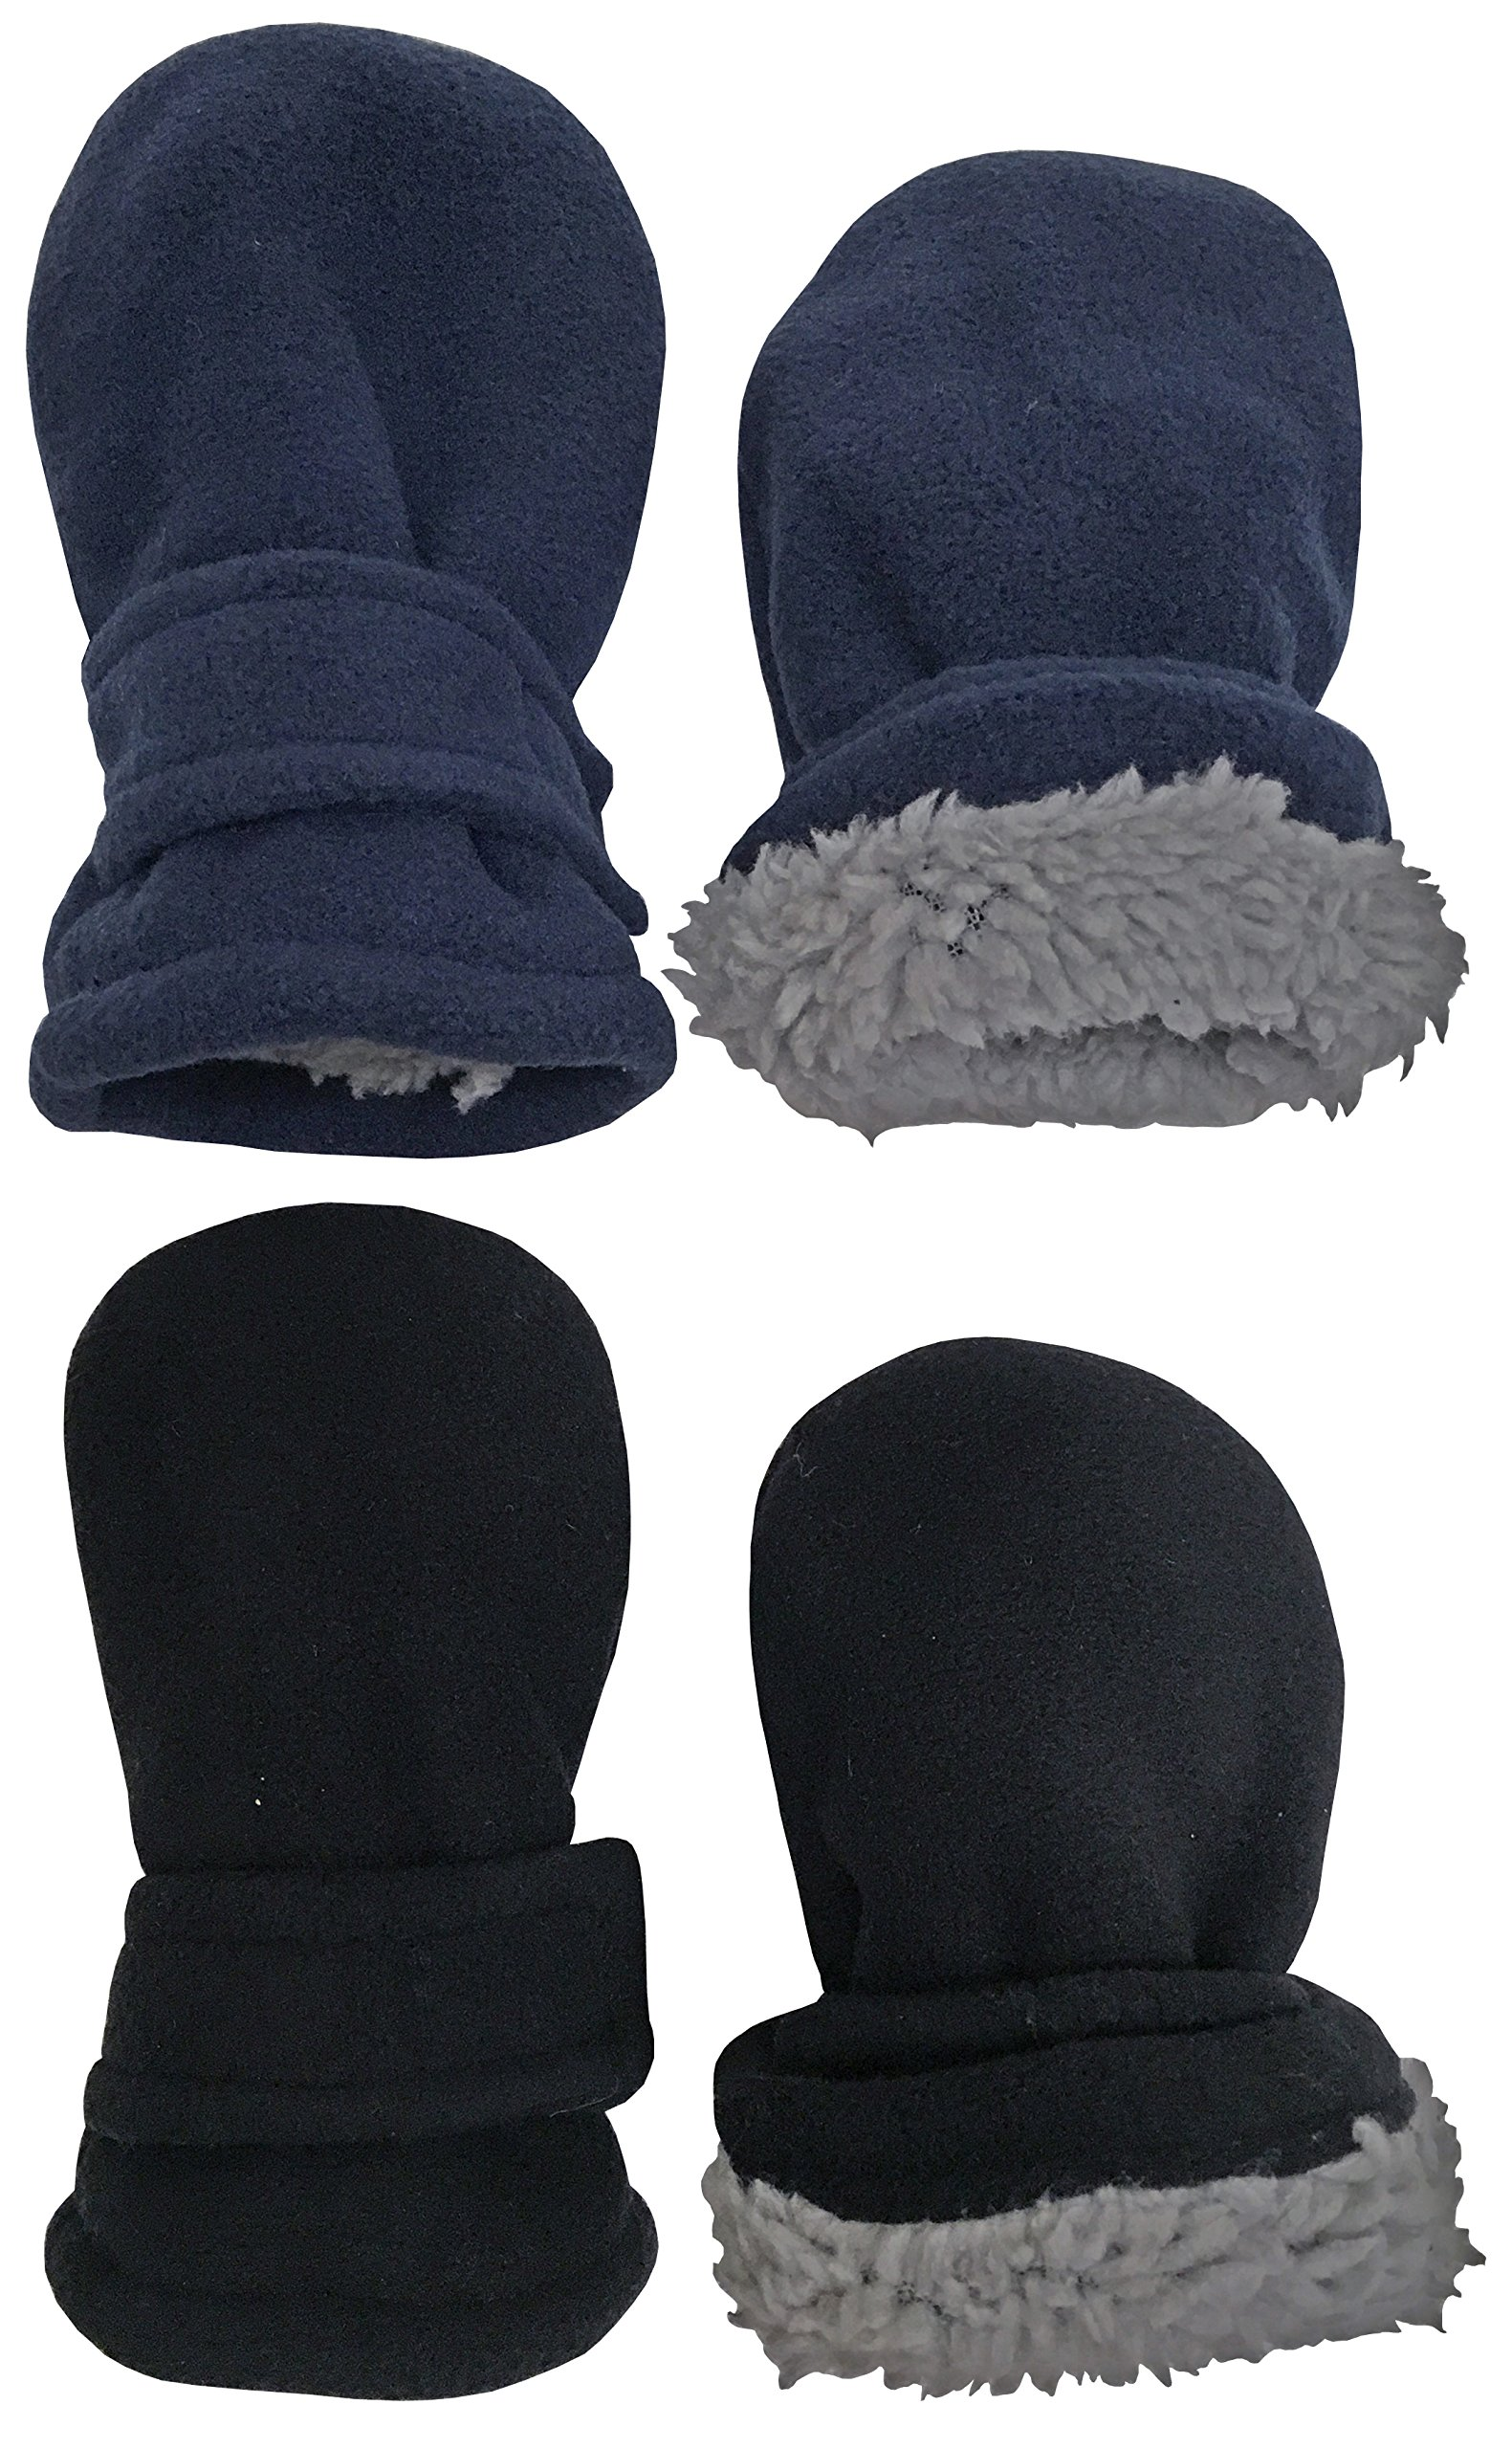 N'Ice Caps Little Kids and Baby Easy-On Sherpa Lined Fleece Mittens - 2 Pair Pack (6-18 Months, Black/Navy Pack - Infant No Thumbs) by N'Ice Caps